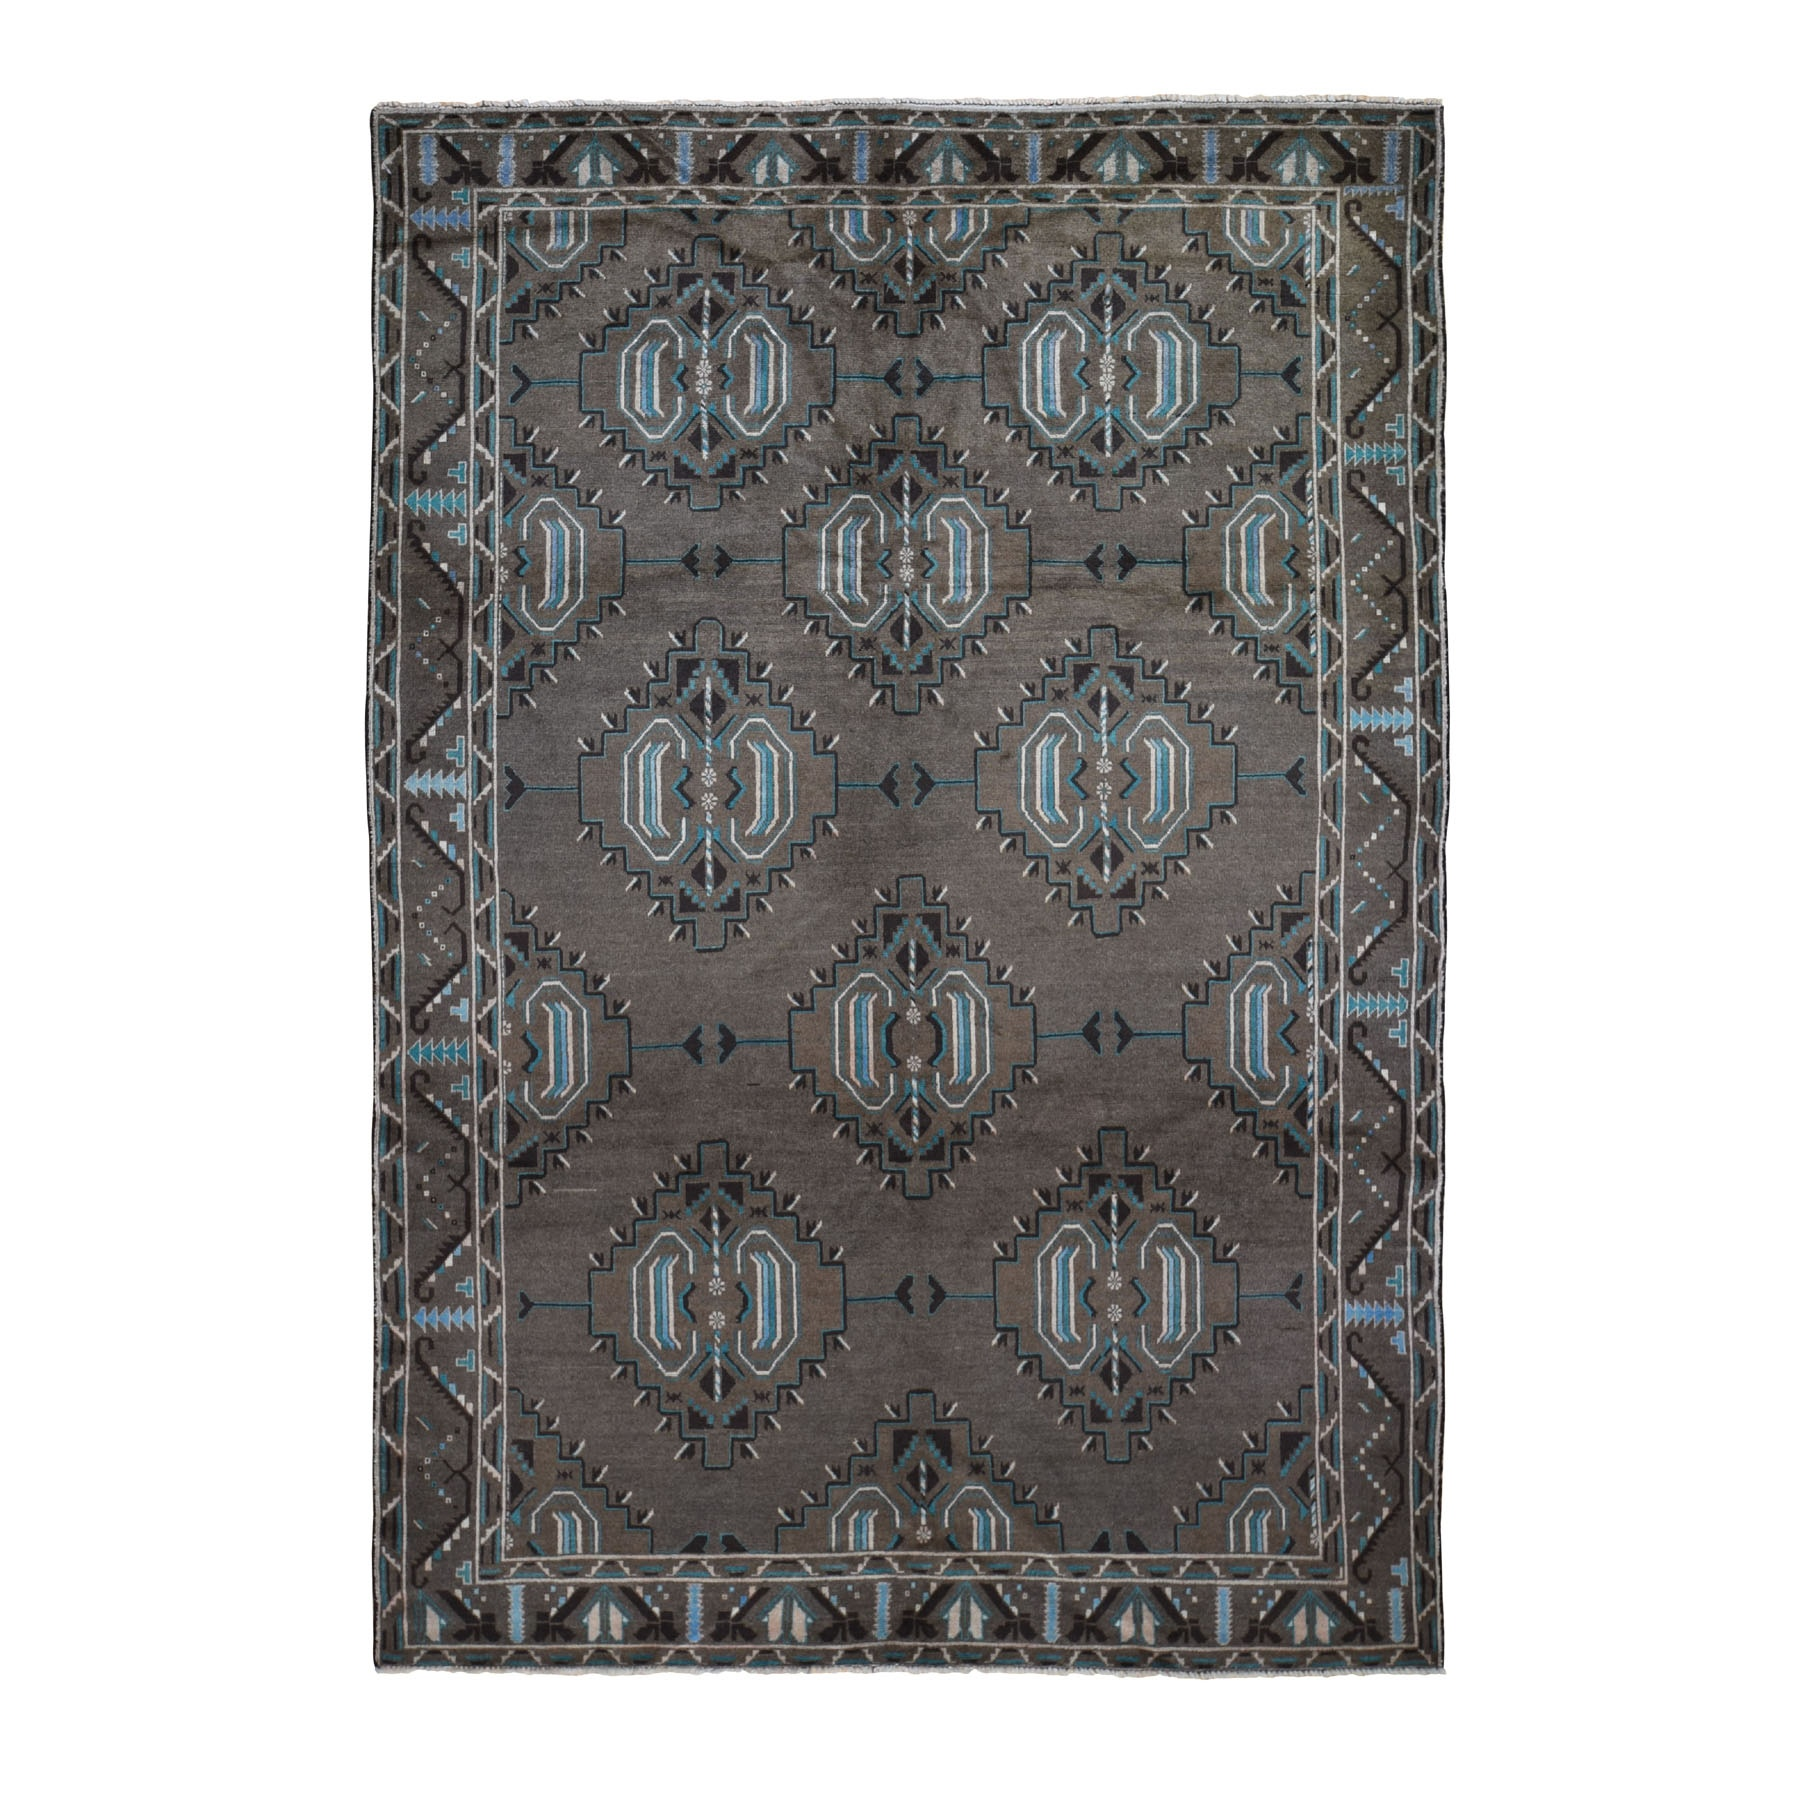 Nomadic And Village Collection Hand Knotted Brown Rug No: 0198352